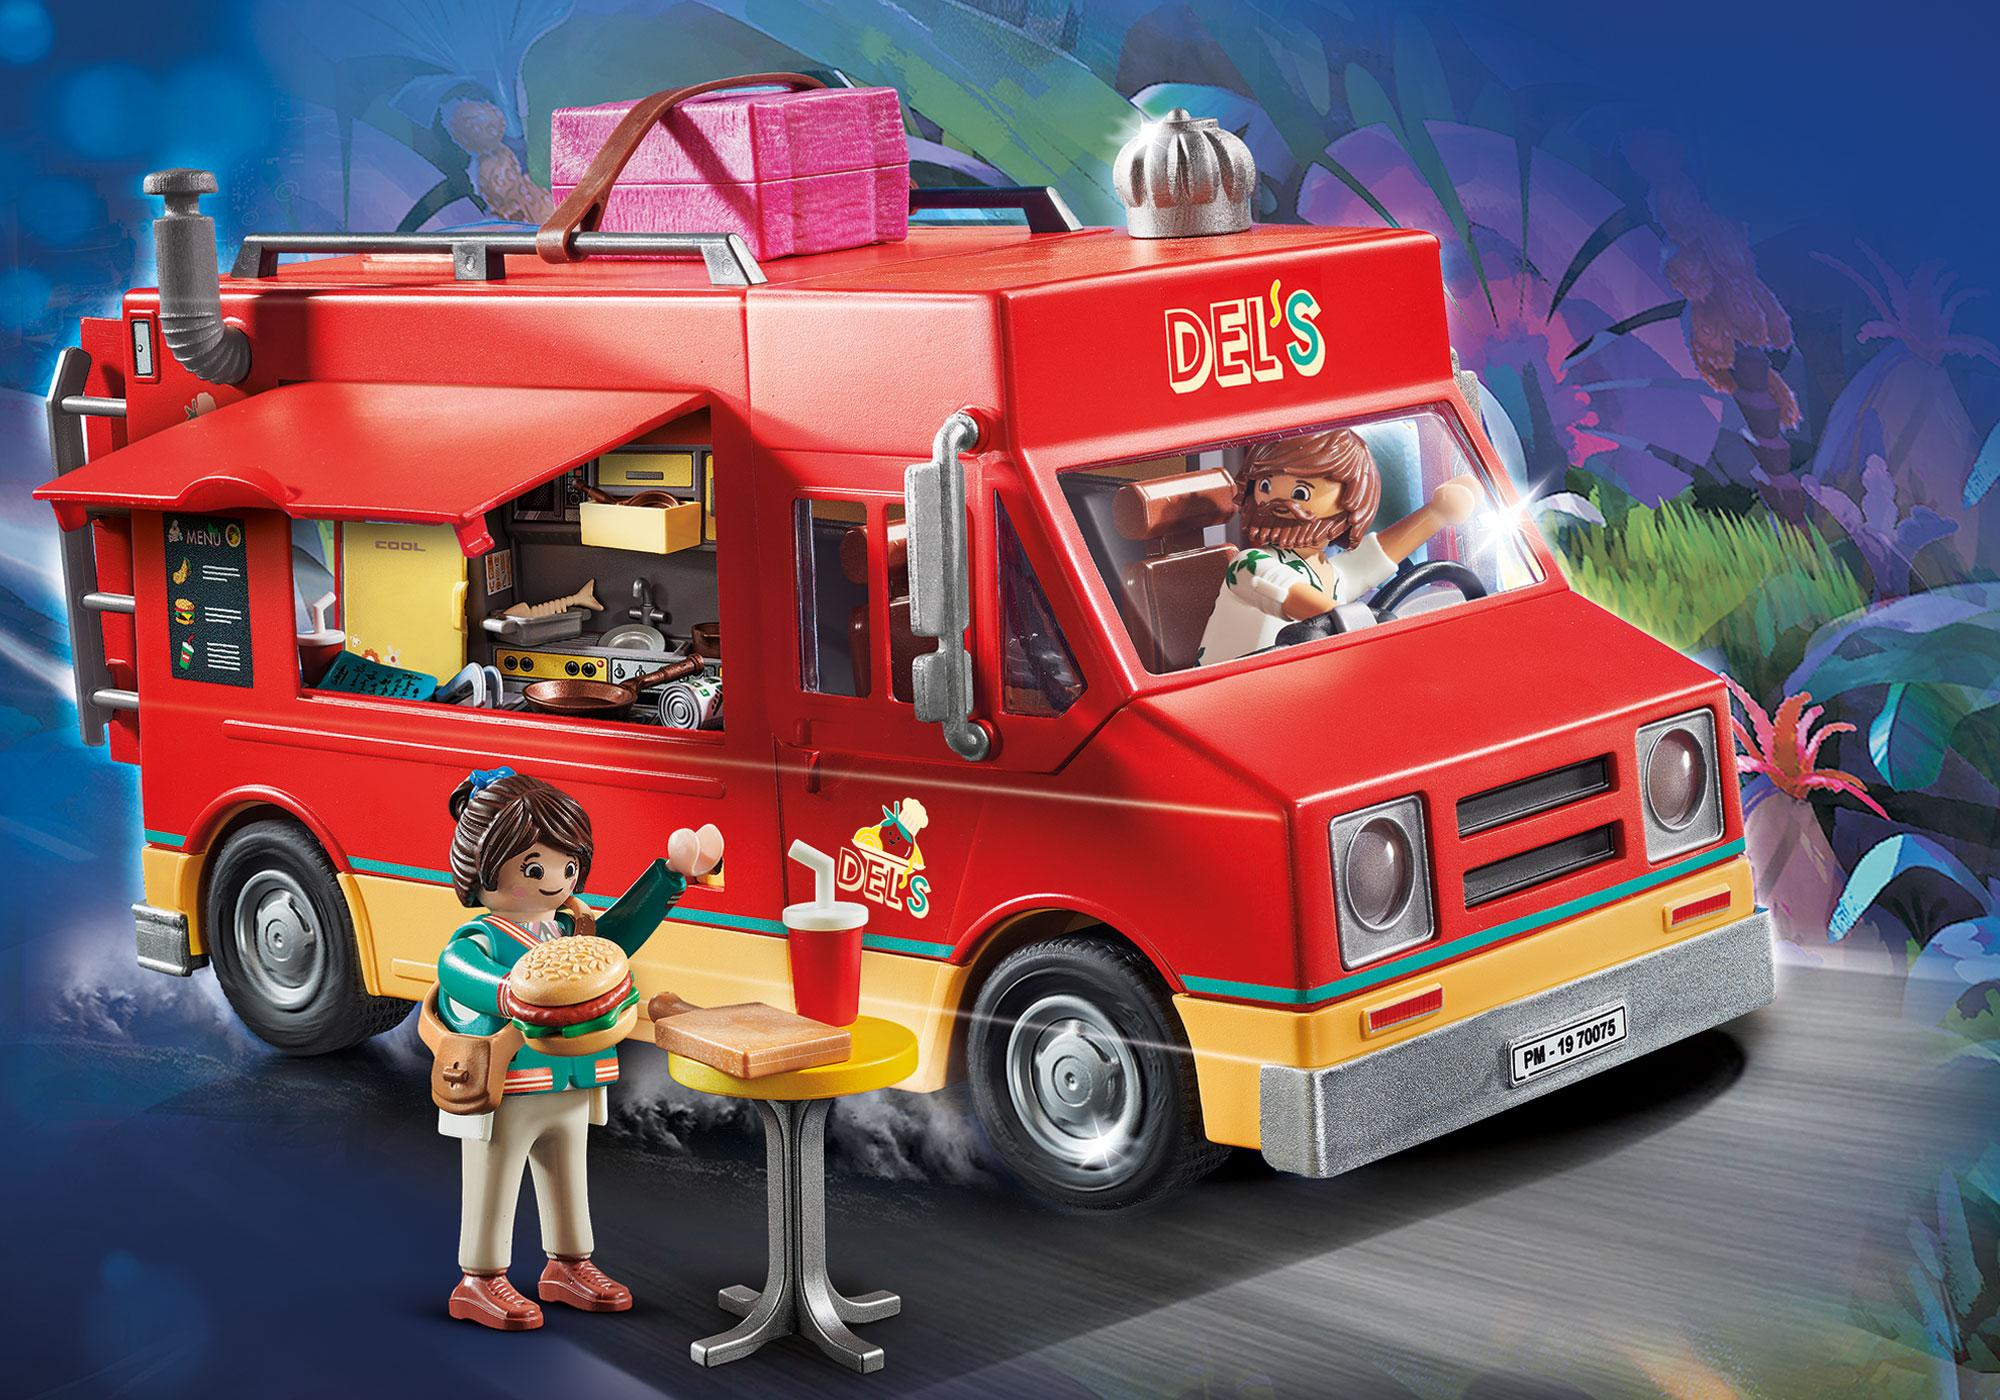 70075_product_detail/PLAYMOBIL: THE MOVIE Del's Food truck